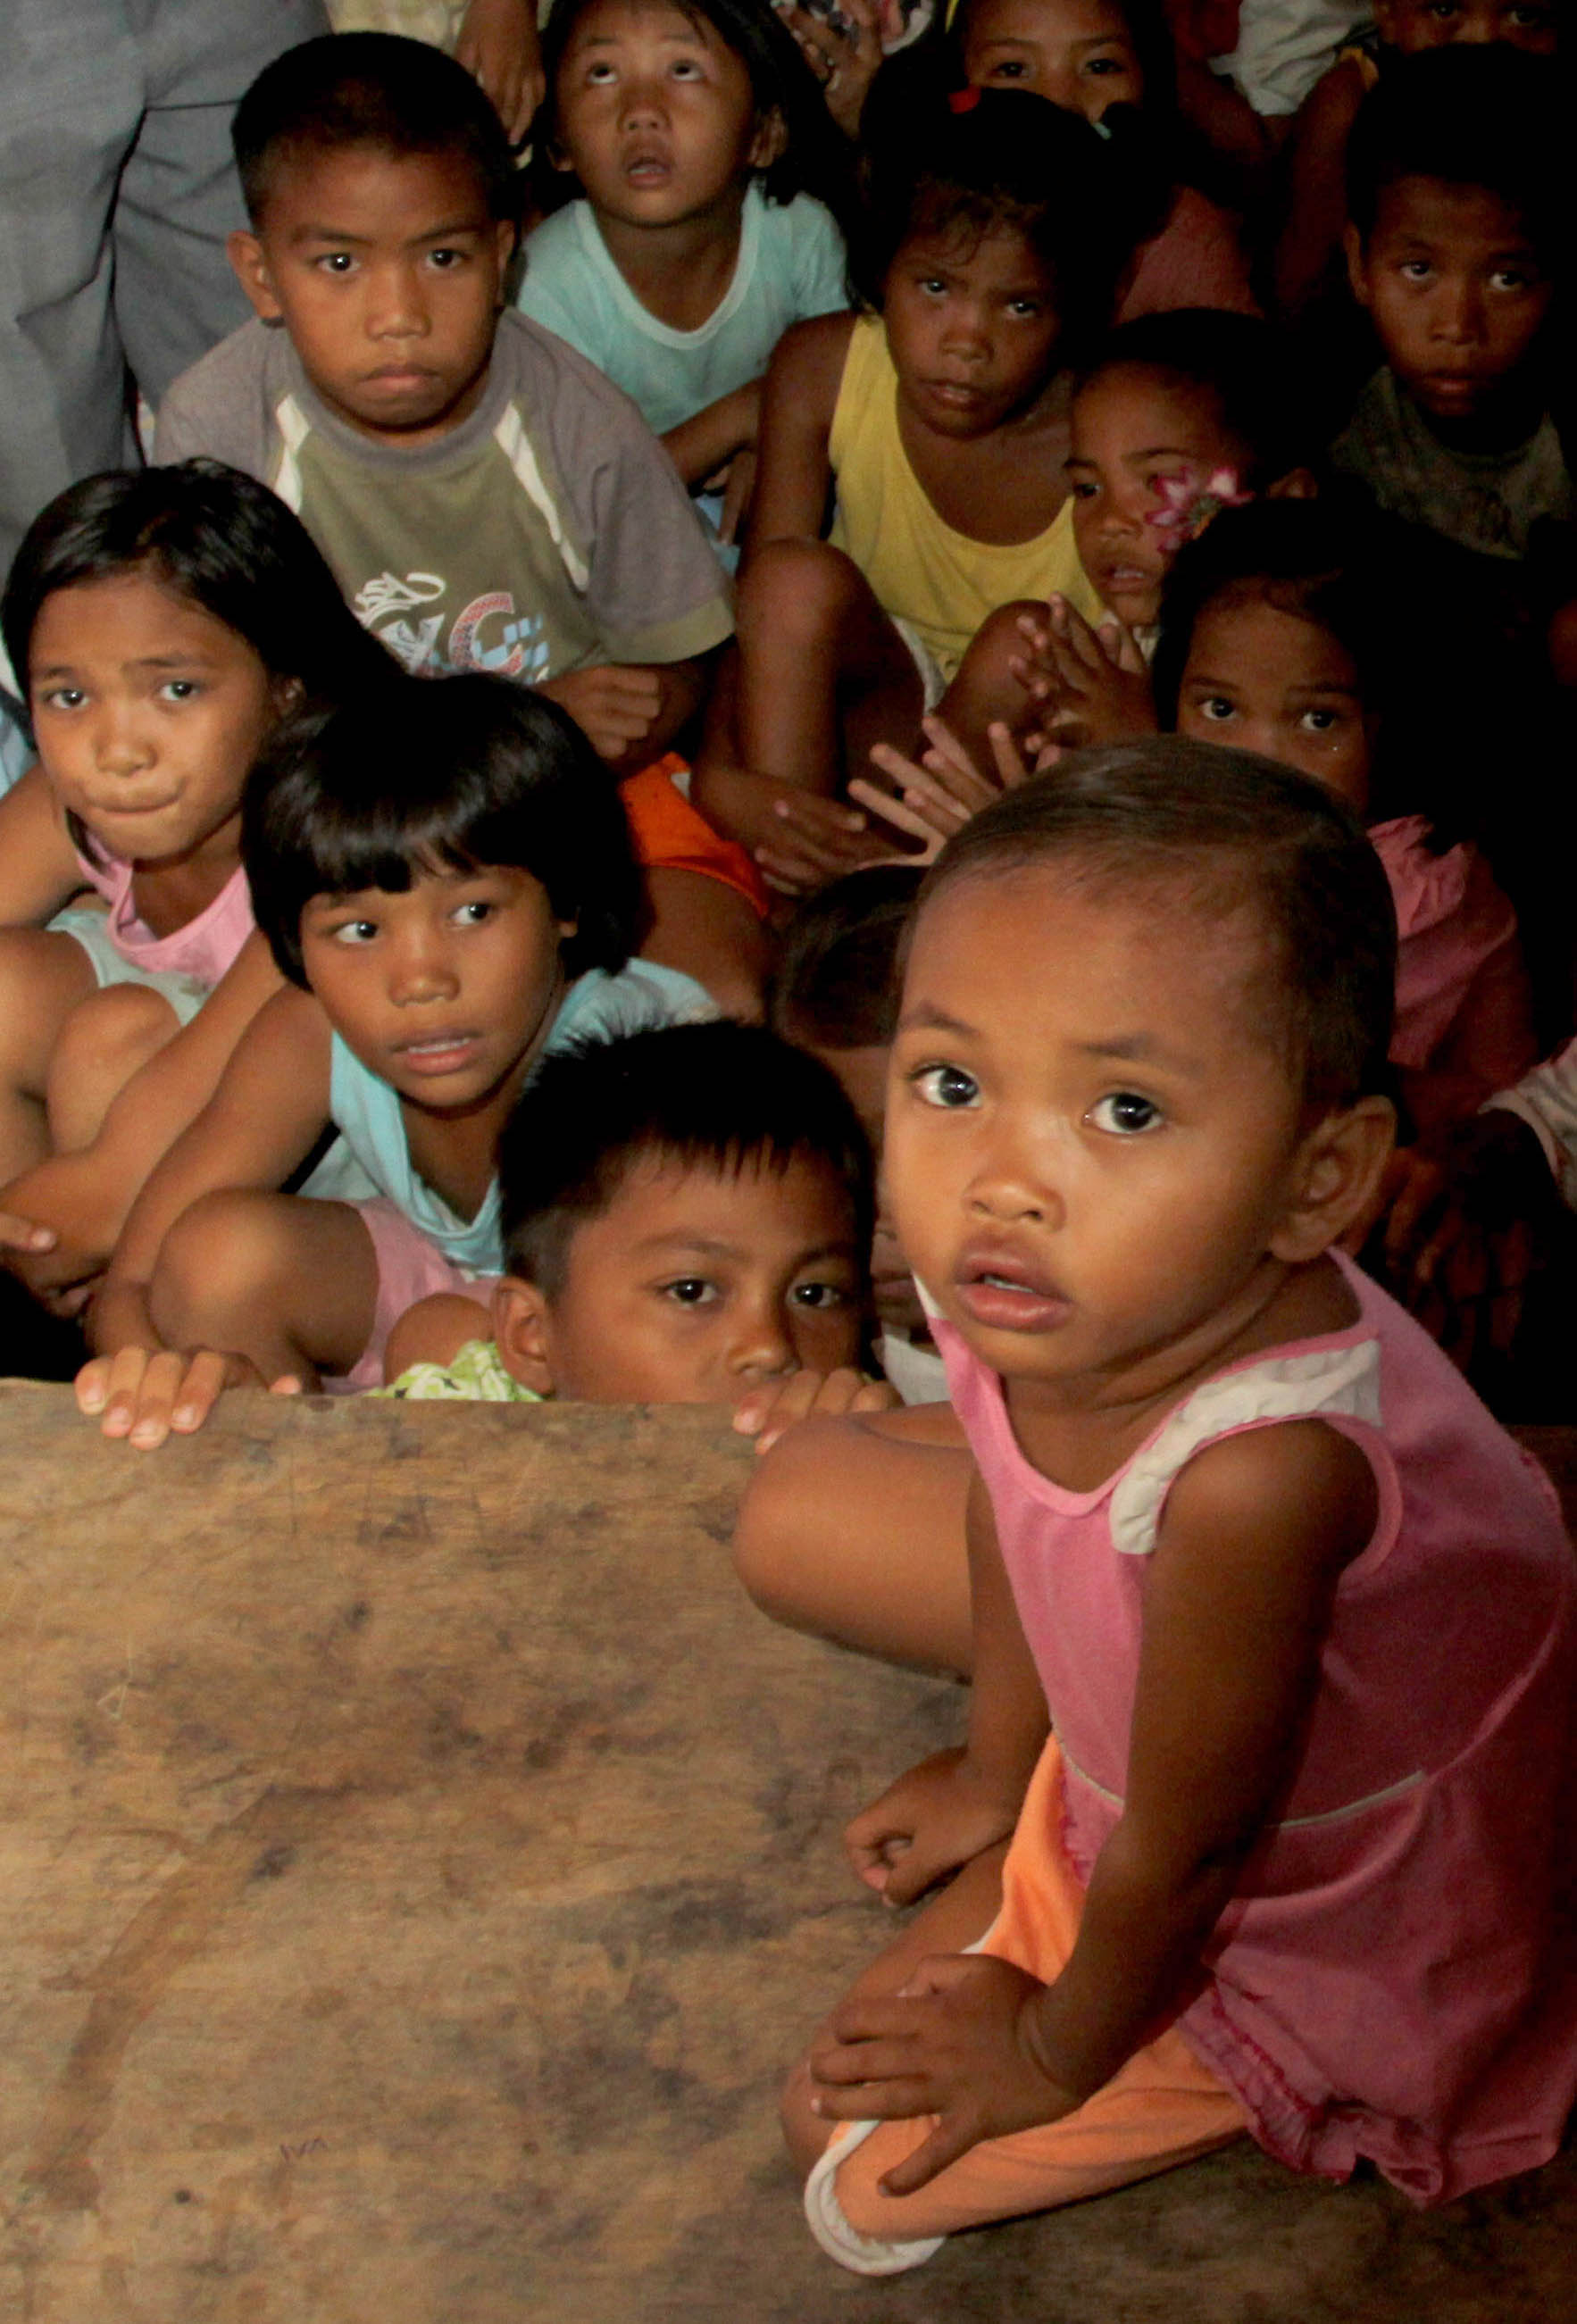 Children crowd under a tarpaulin tent at an evacuation camp in the village of Libungan Toretta, southern Philippines. Tens of thousands remain in evacuation camps across the southern island of Mindanao, nine months after an all-out war erupted between gov